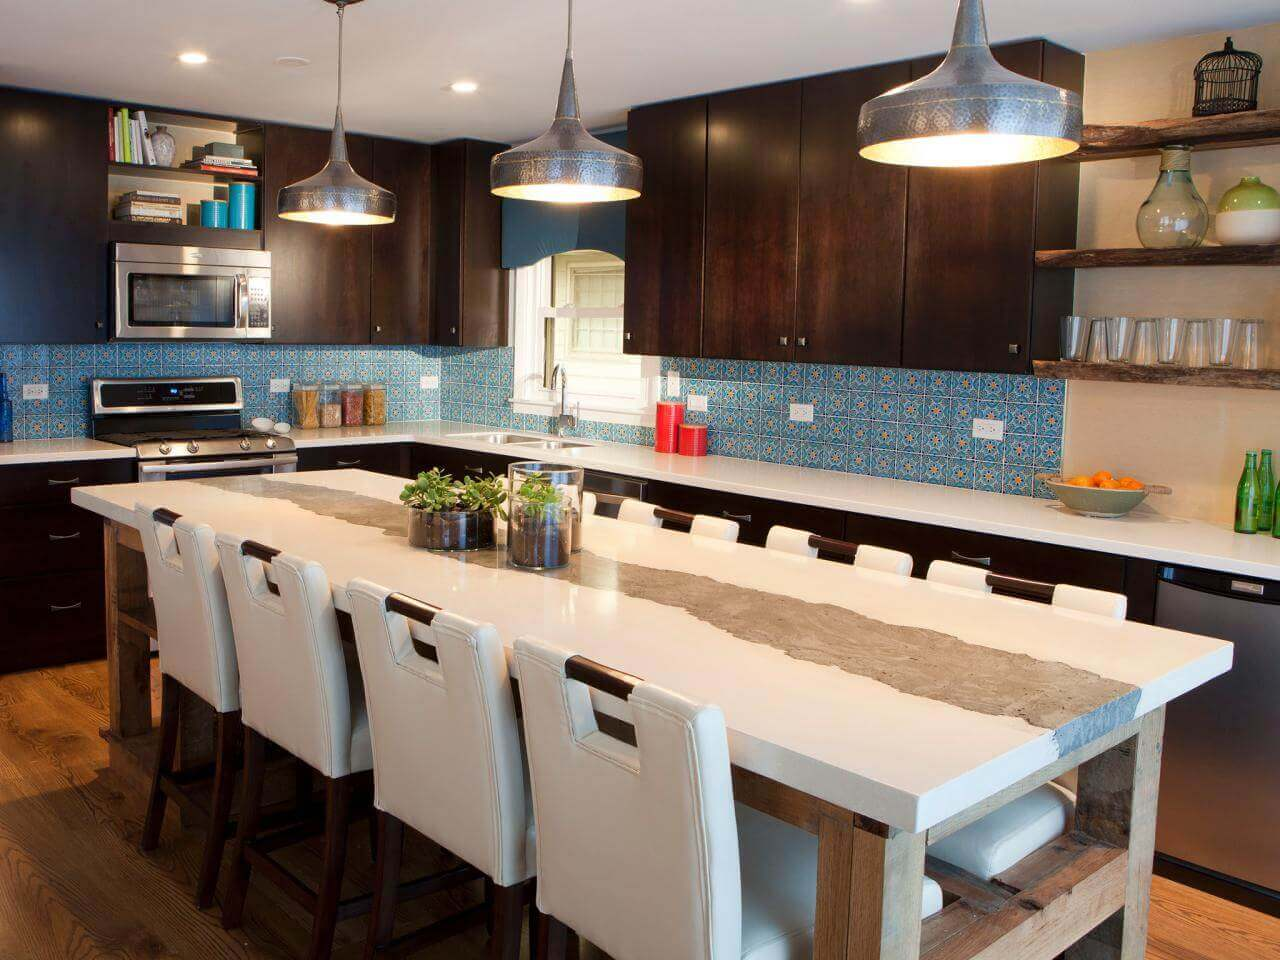 The kitchen above features a large kitchen island idea with plenty in–kitchen eating space and seating options. With white countertop, medium brown wood legs, and artistic craftsmanship, it combines natural colors with natural materials, and a sleek design